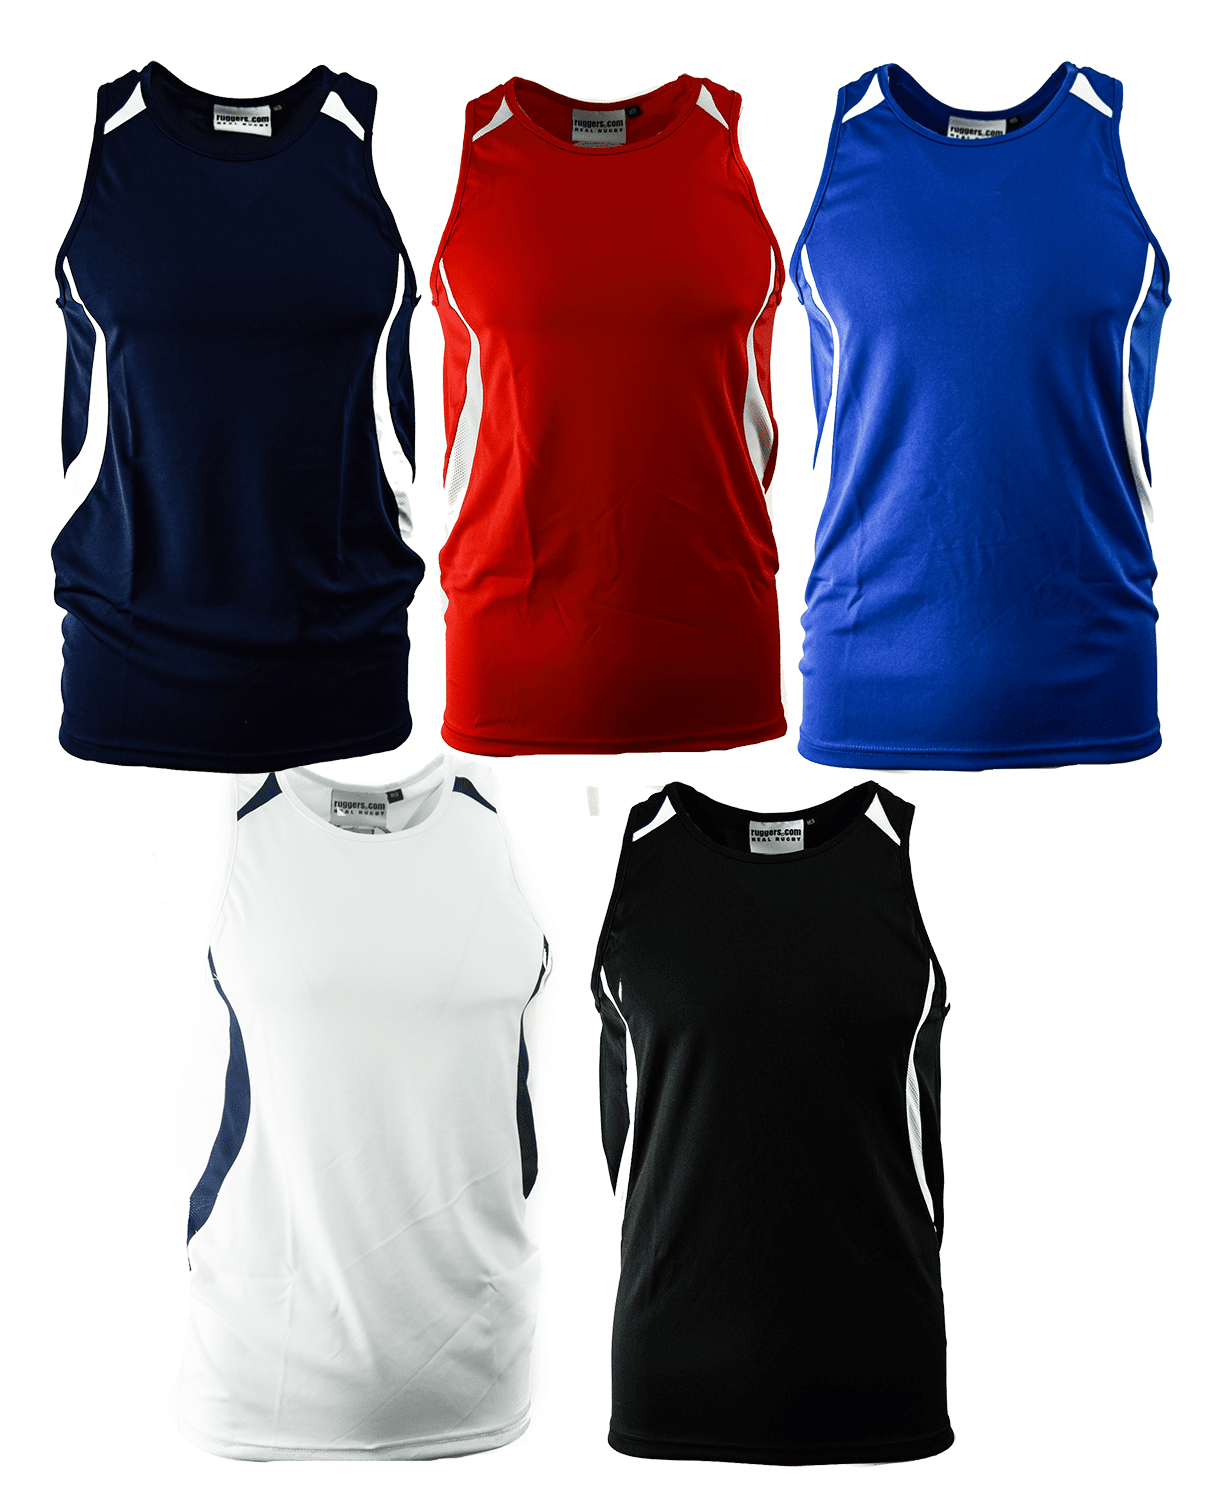 Training Tee - Ruggers Rugby Sleeveless Training Tee